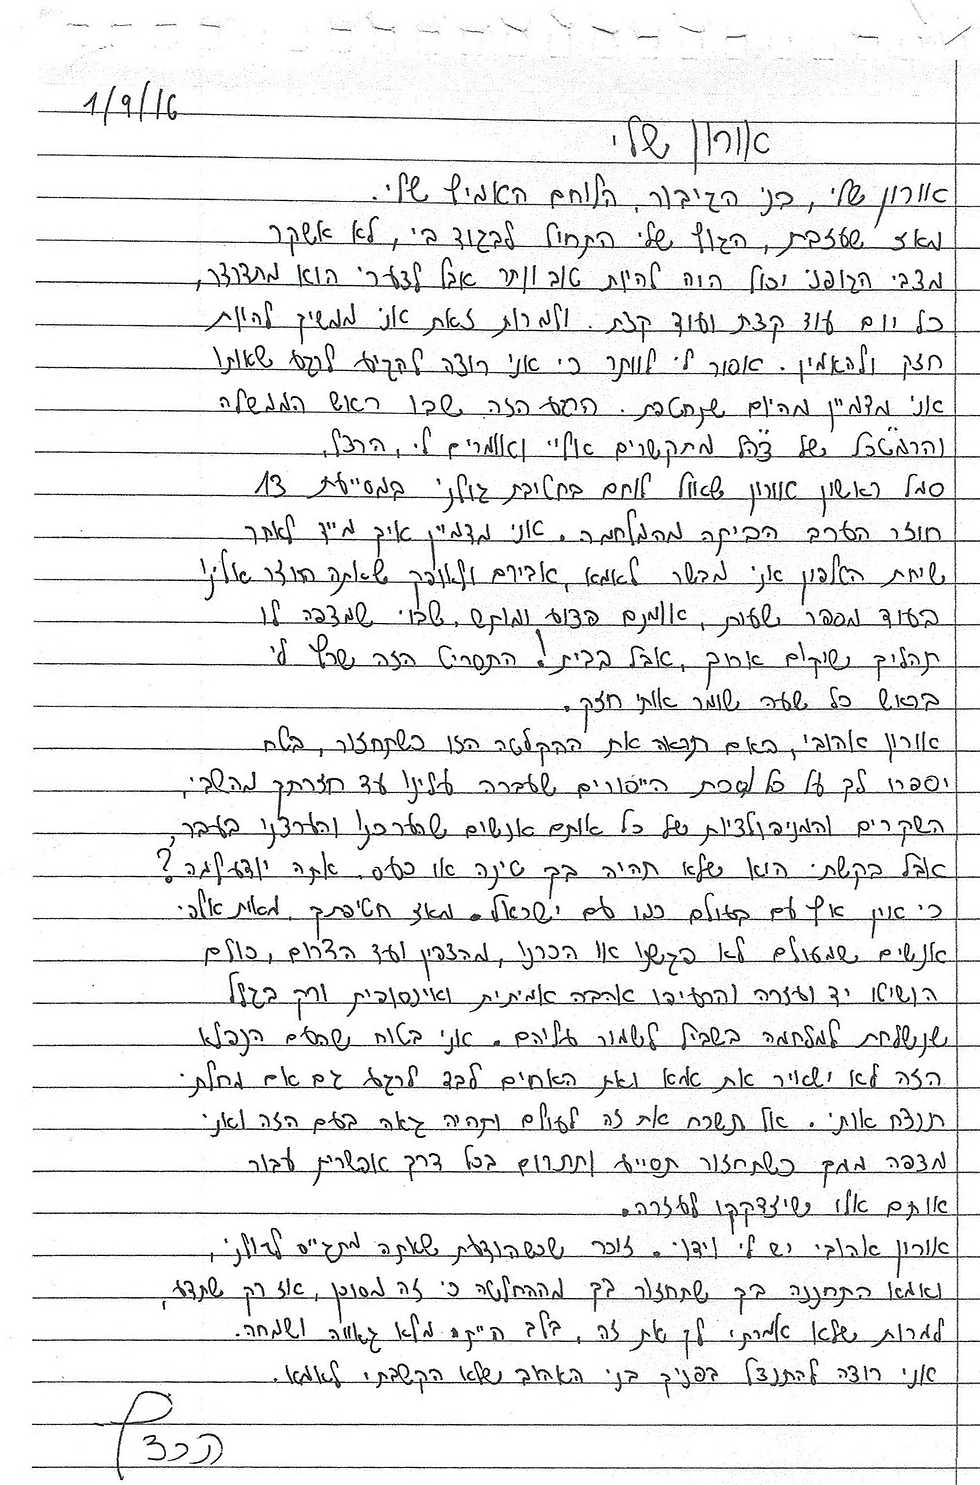 Herzl Shaul's final letter to his fallen son.